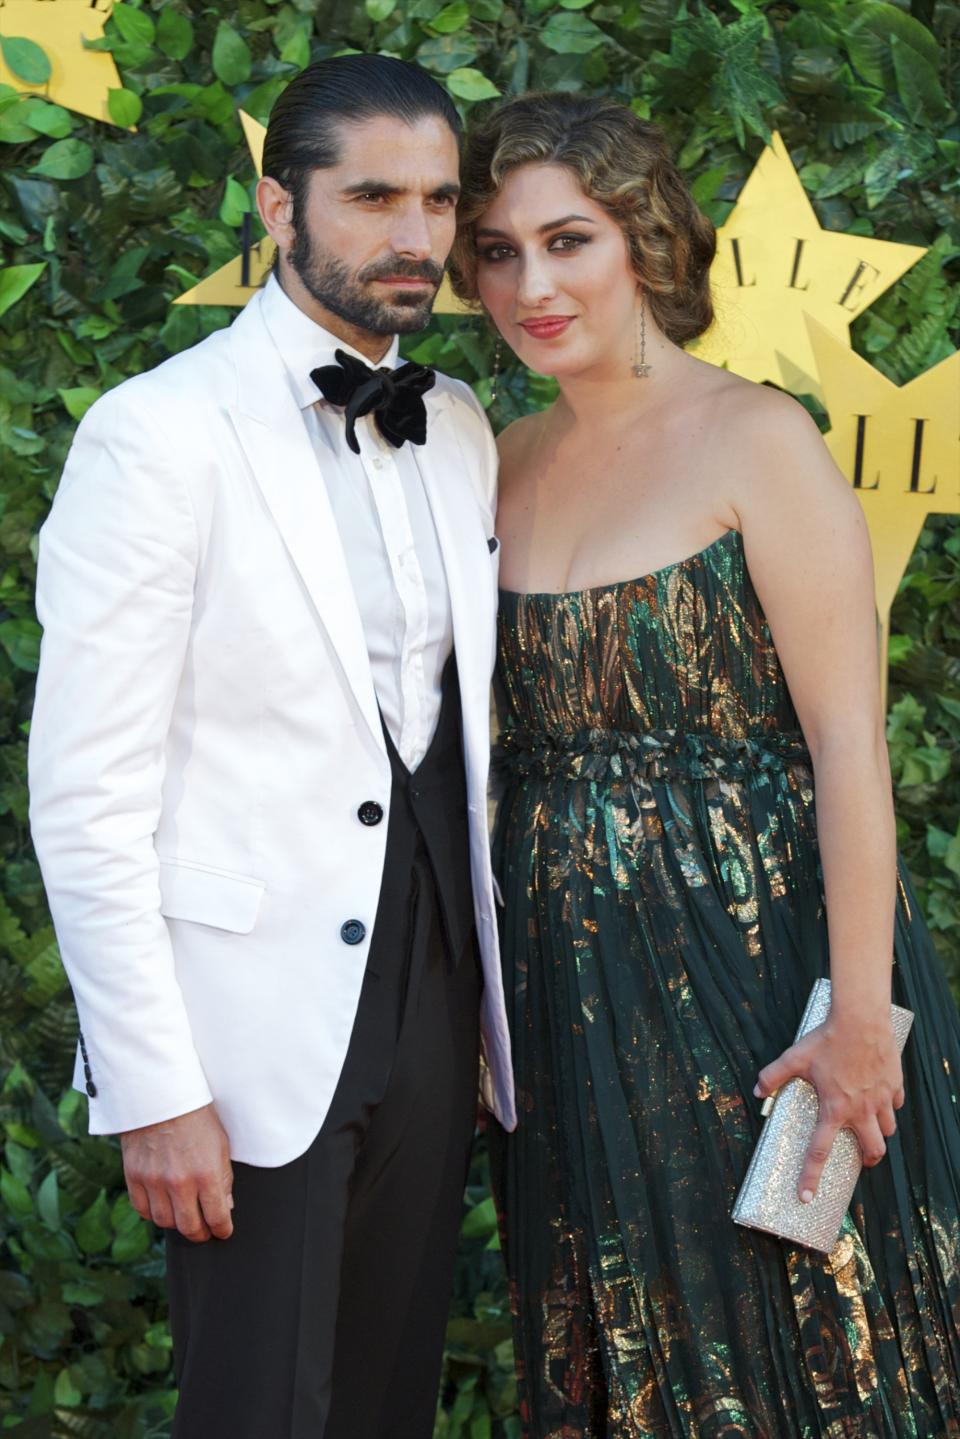 MADRID, SPAIN - JUNE 30:  Spanish flamenco singer Estrella Morente and her husband Spanish bullfigther Javier Conde attend ELLE Awards 25th Anniversary at the Matadero cultural center on June 30, 2011 in Madrid, Spain.  (Photo by Carlos Alvarez/Getty Images)